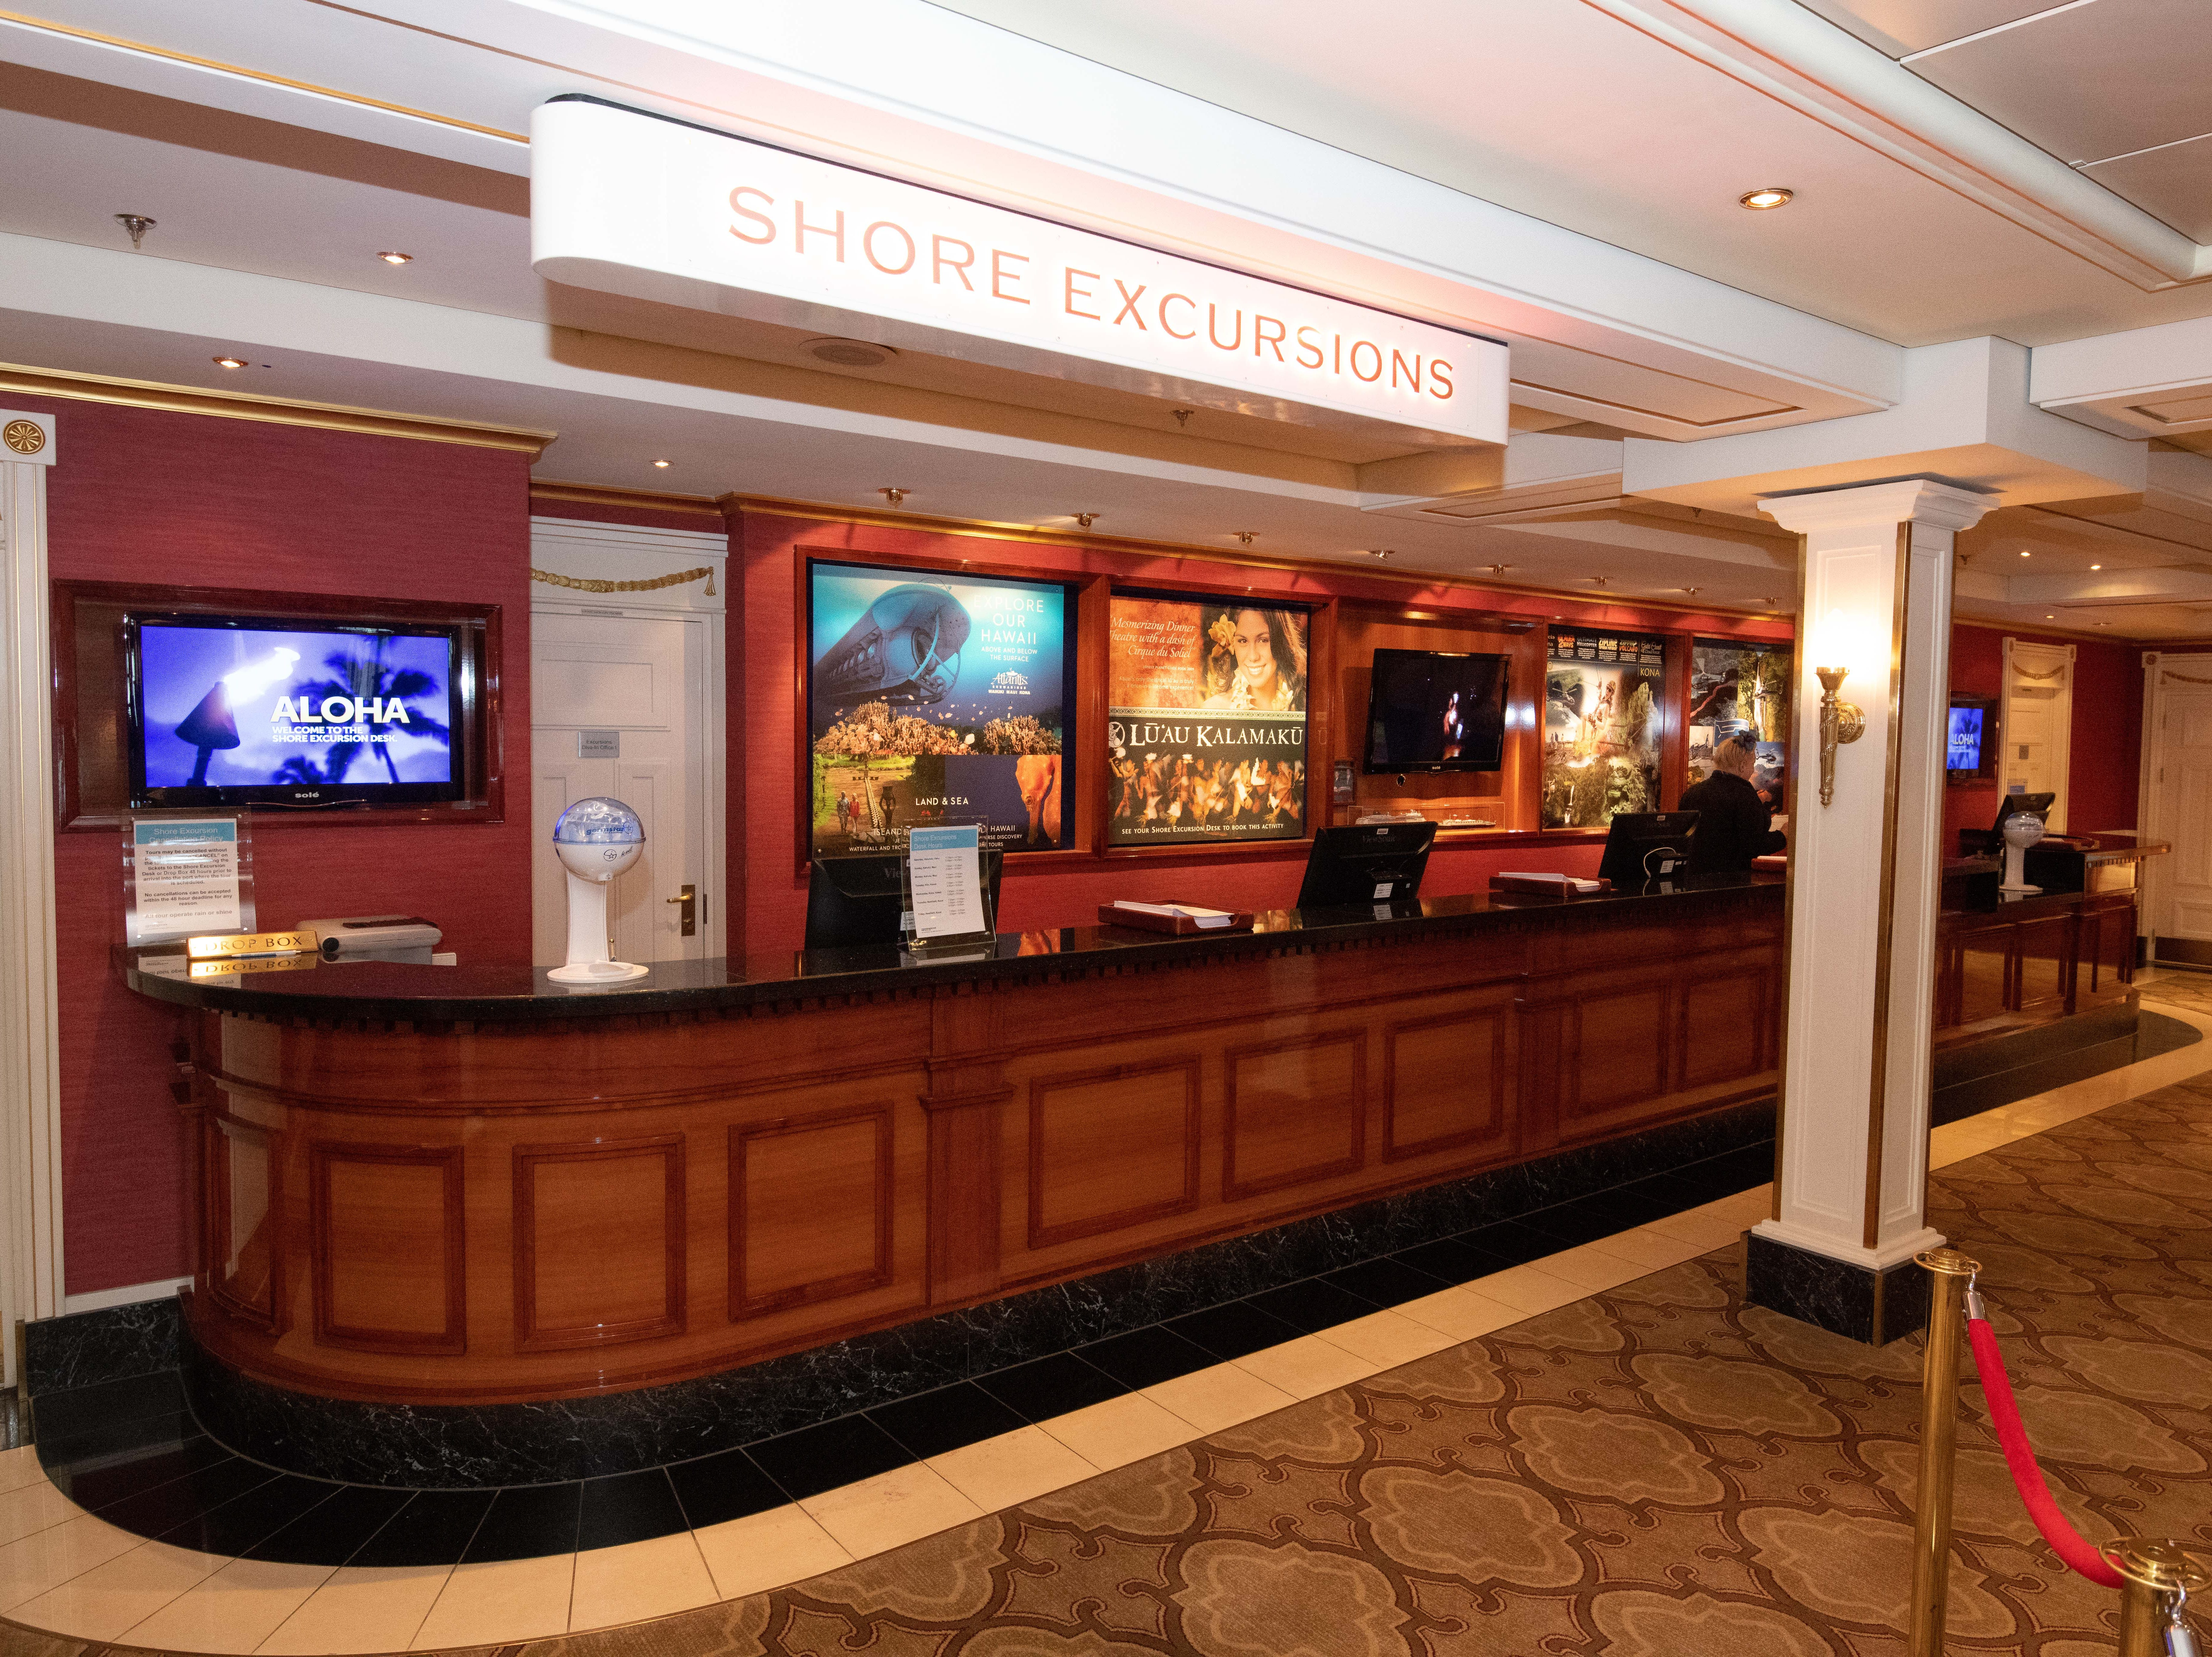 Passengers can arrange shore tours at the Shore Excursions desk located on the ground level of the Capitol Atrium.